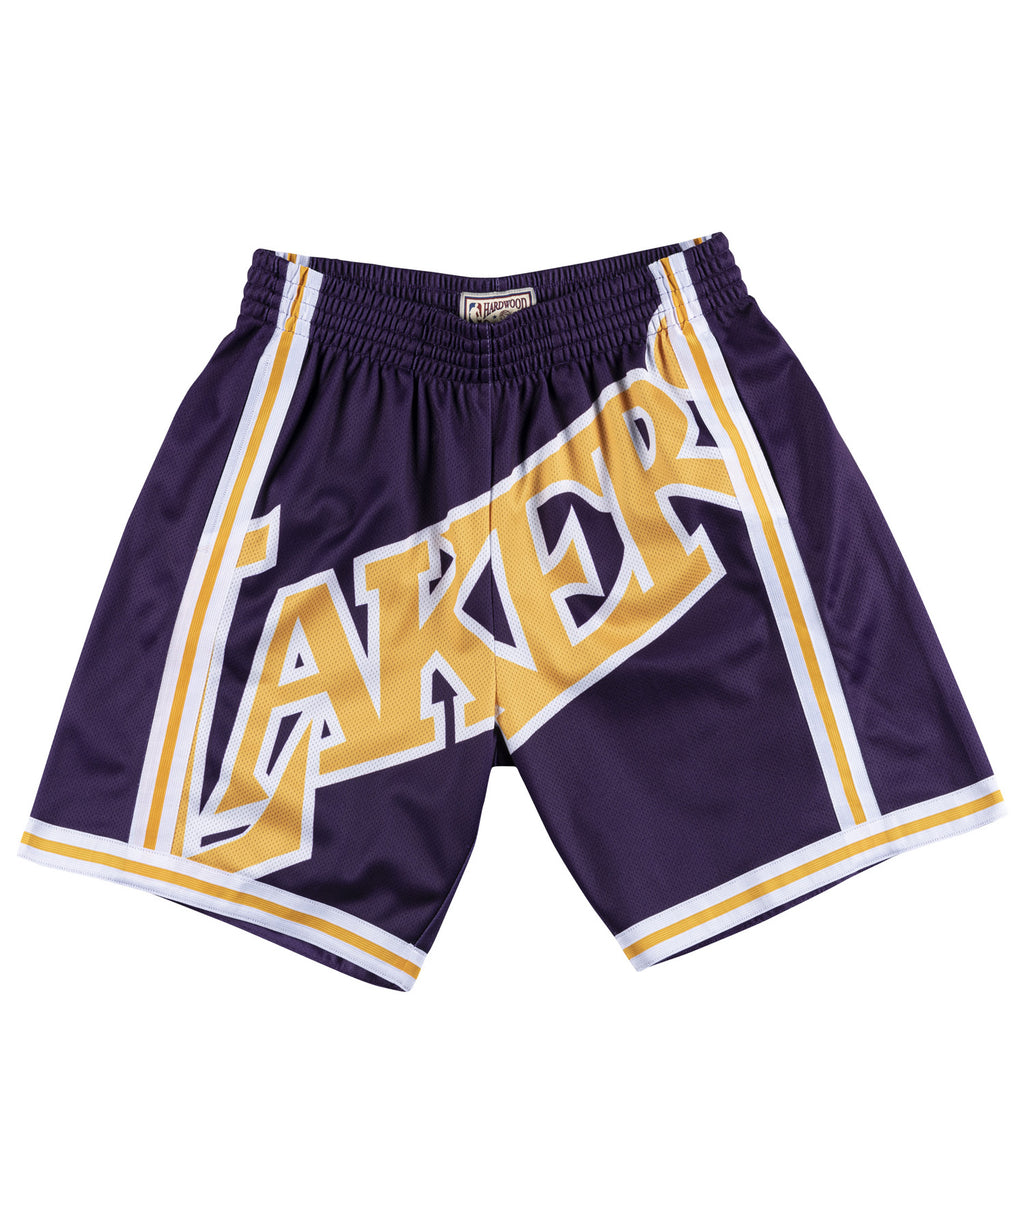 LA Lakers Big Face Shorts 1996